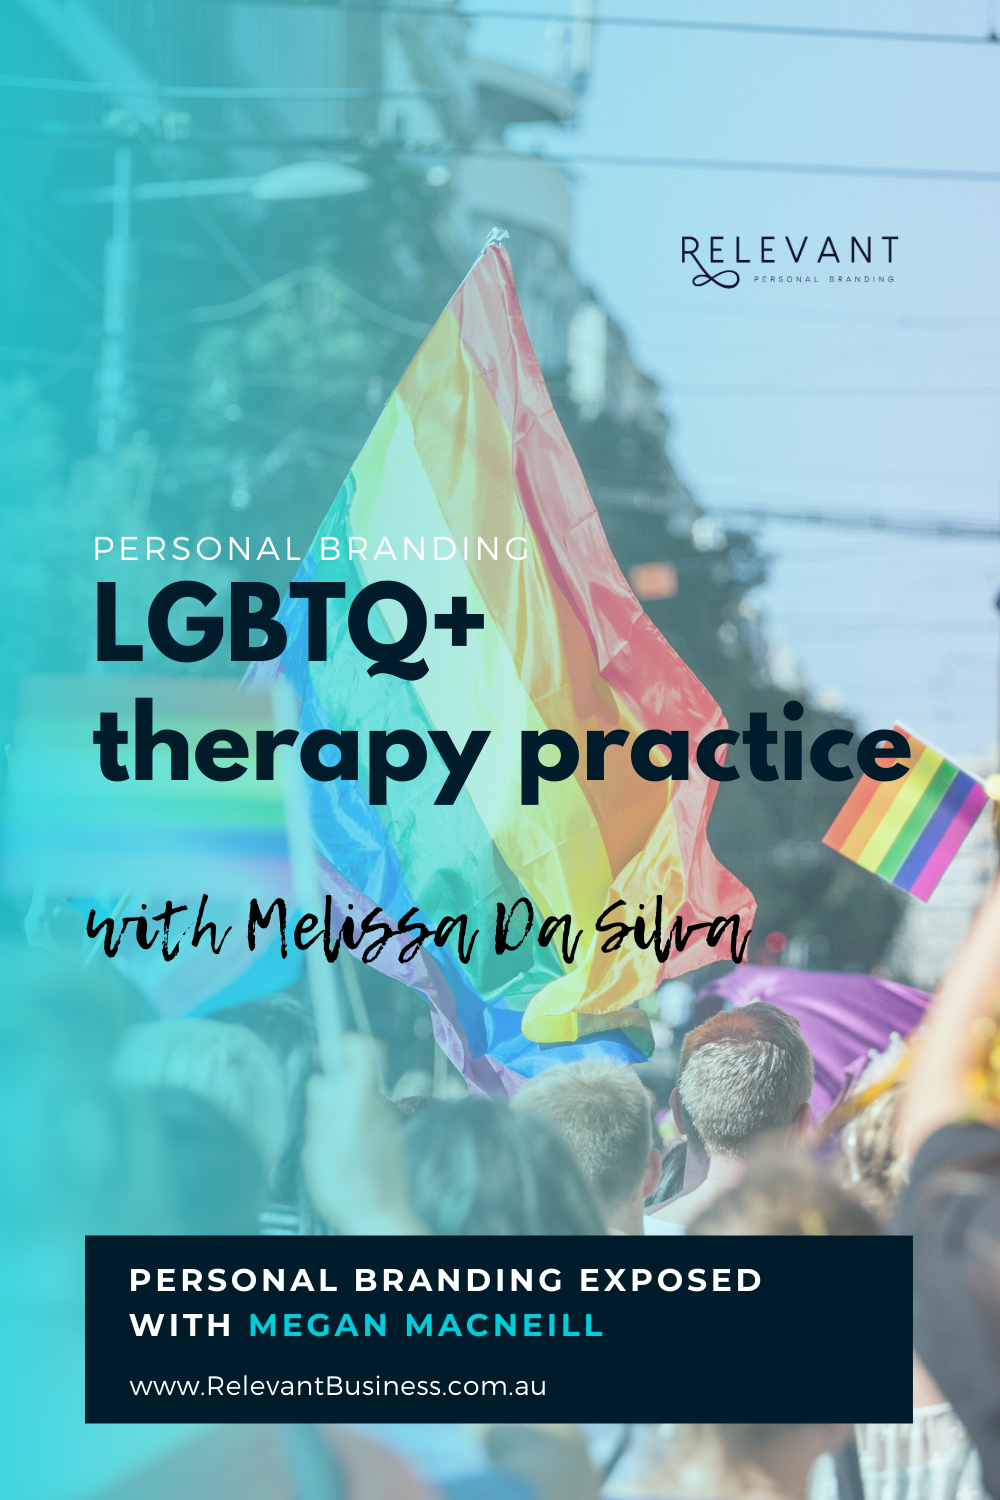 LGBTQ + therapy practice